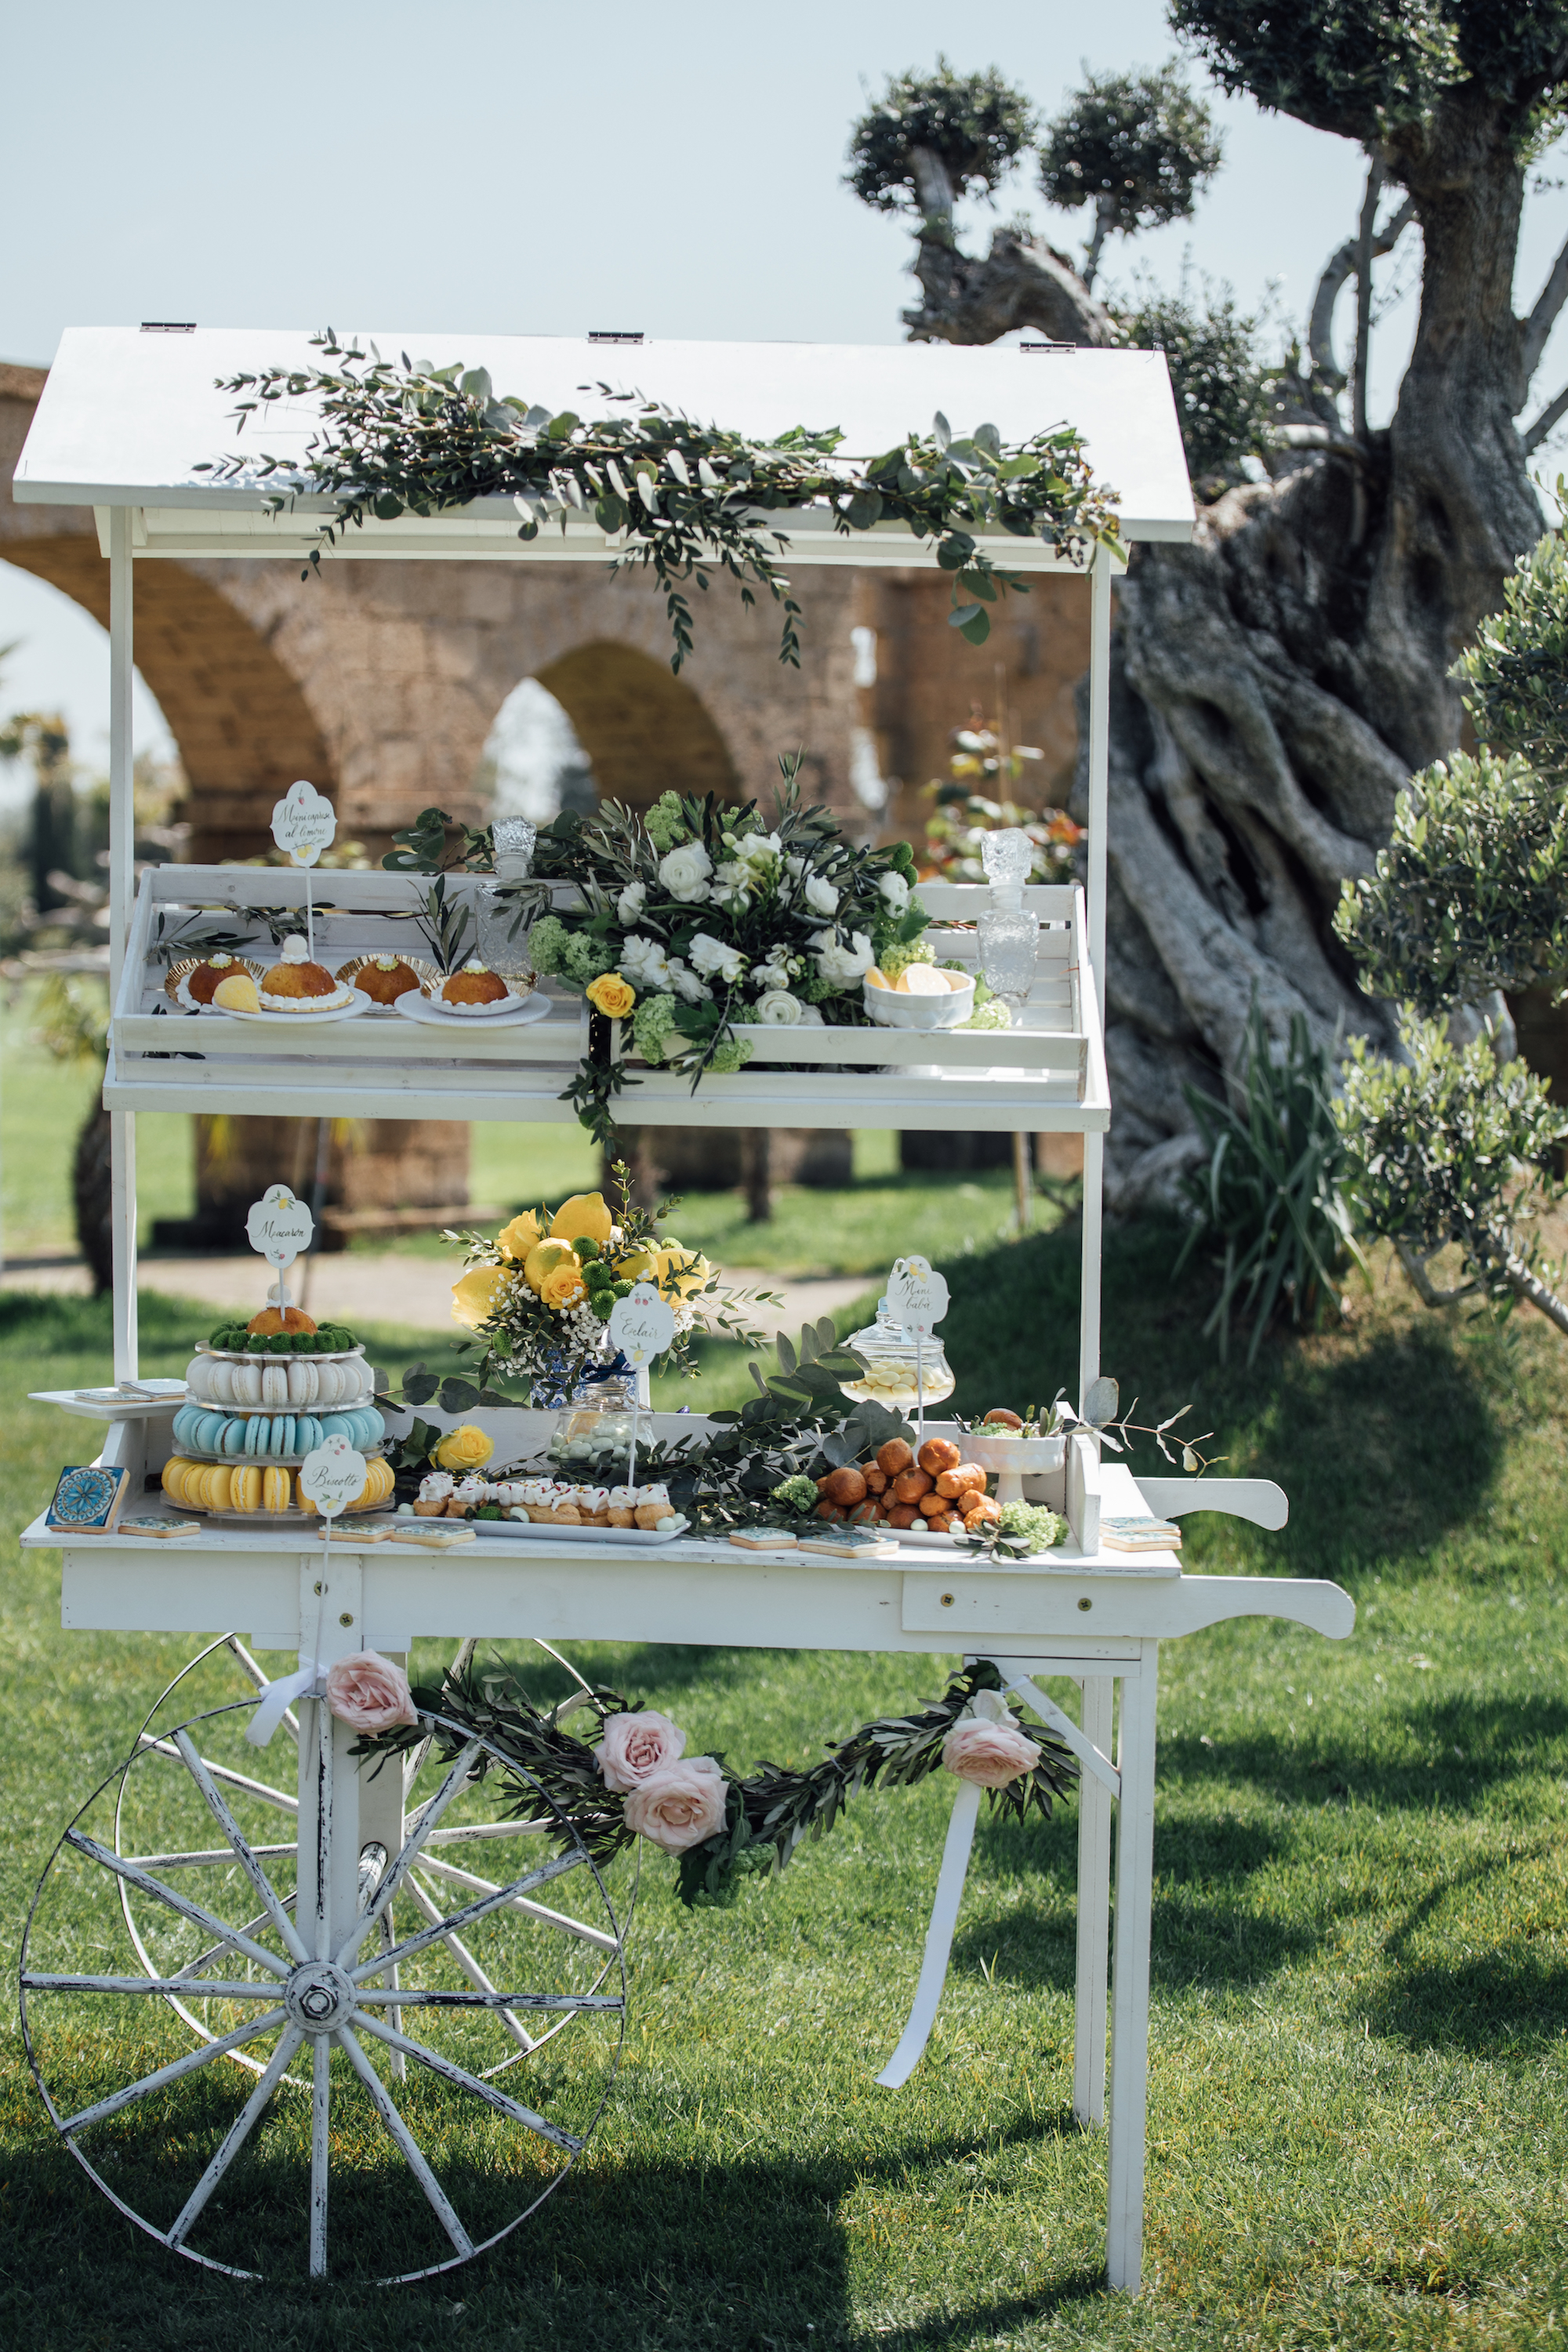 Italian Wedding sweets displayed on a bar cart - from a Lemon Yellow Garden Wedding Styled Shoot in Rome Italy - by Jess Palatucci Photography - as seen on www.BrendasWeddingBlog.com